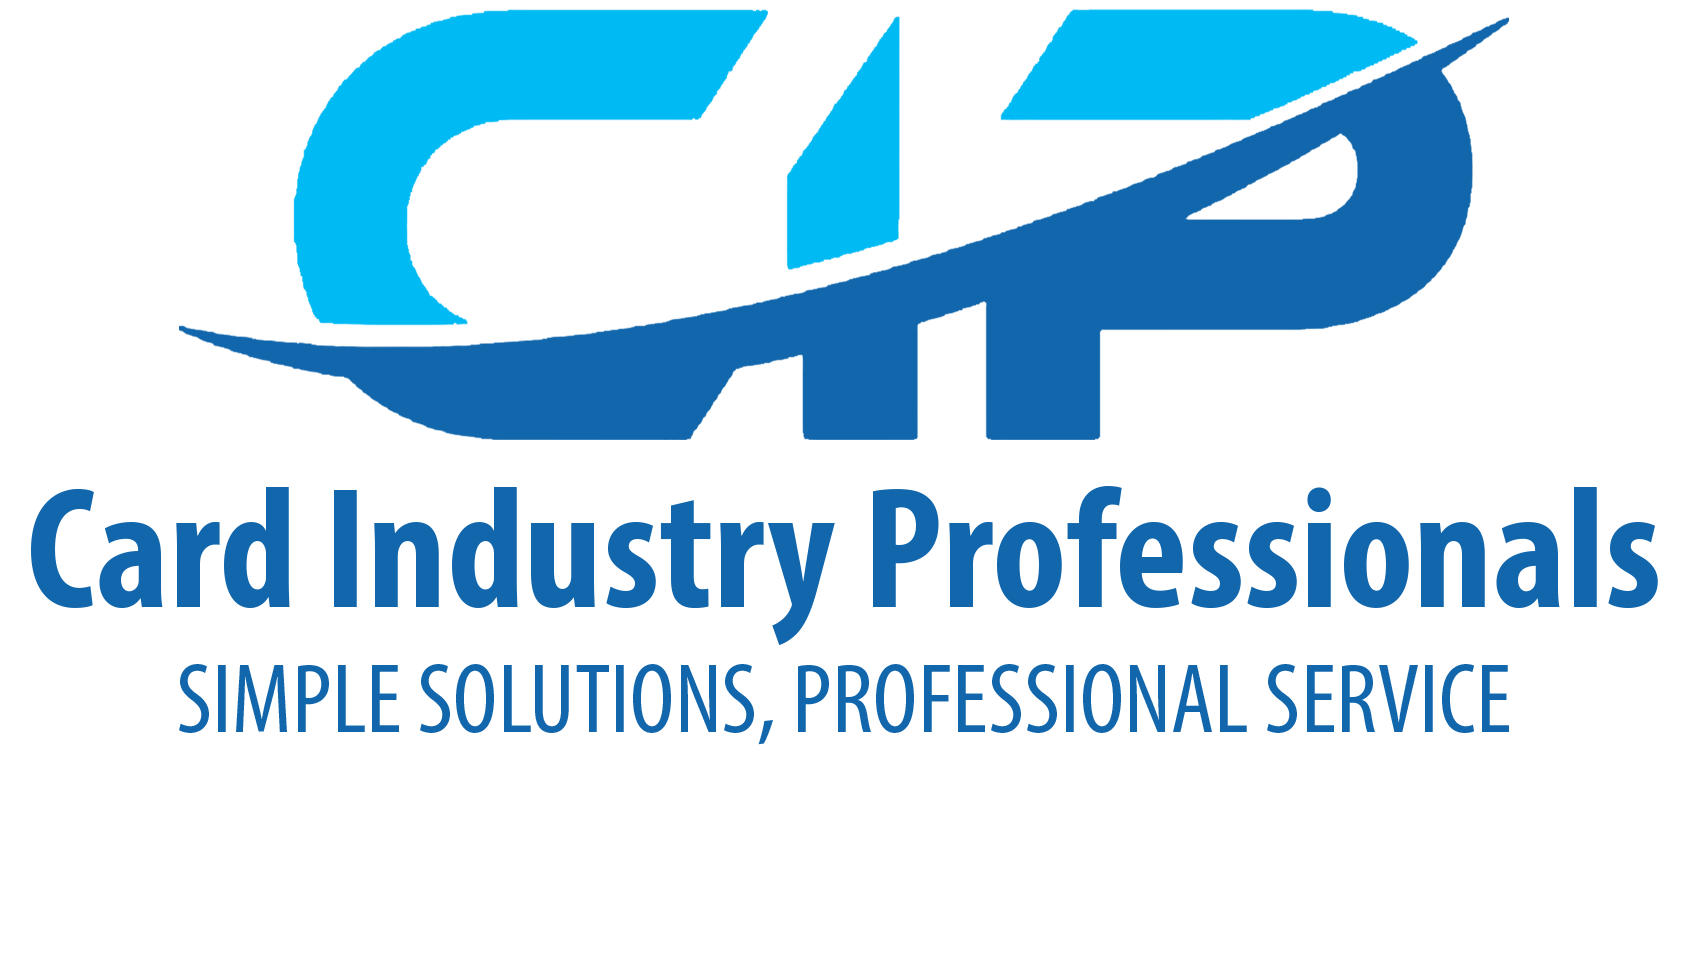 Card Industry Professionals logo